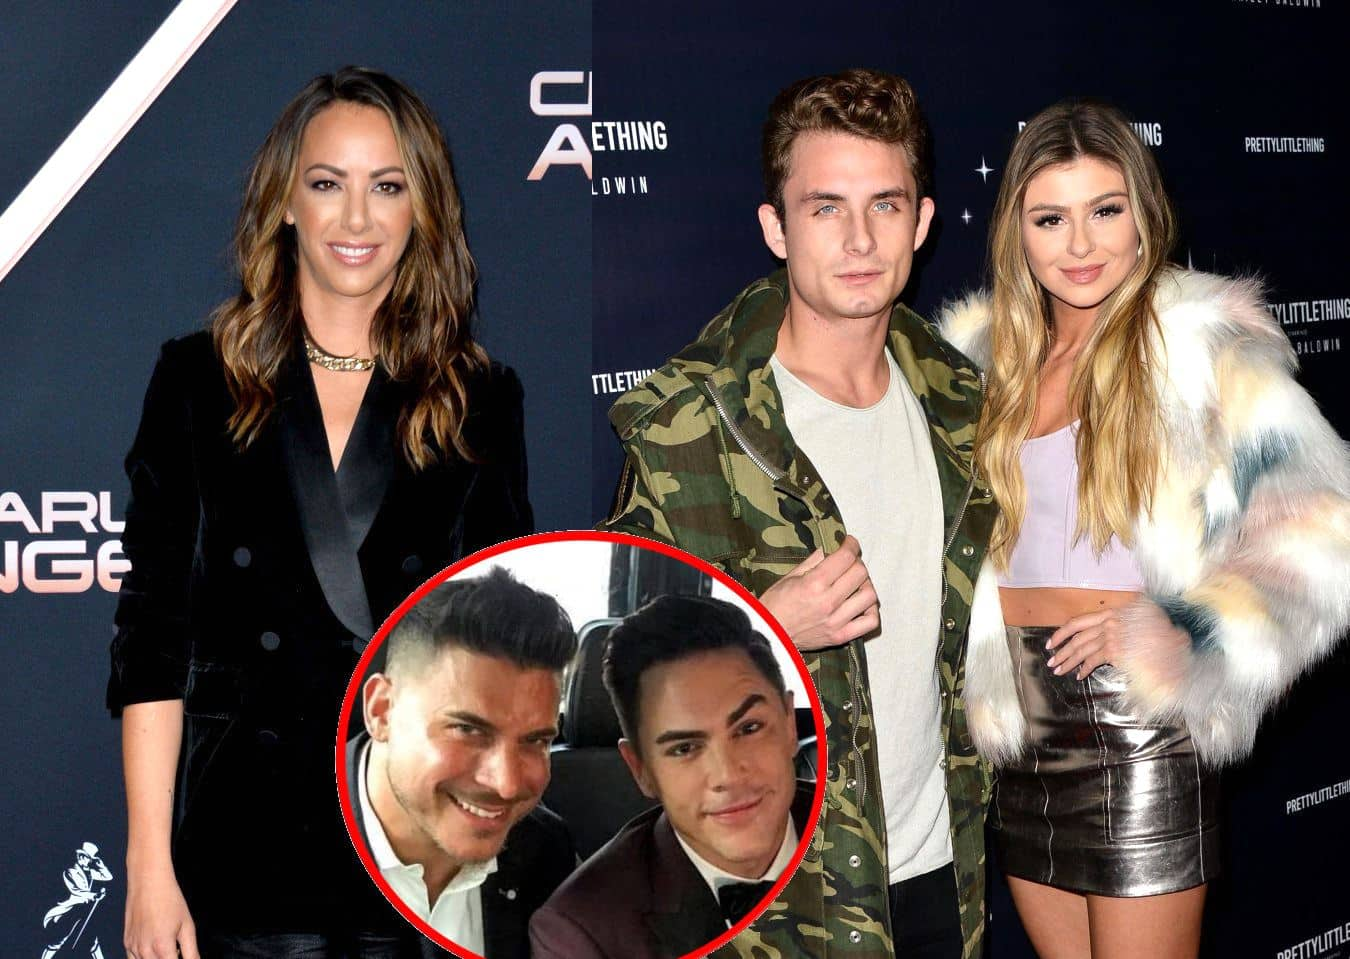 """Vanderpump Rules Star Kristen Doute On Why She Doesn't Believe James and Raquel Are in Love, Calls Jax and Tom """"Attention Wh*res"""""""